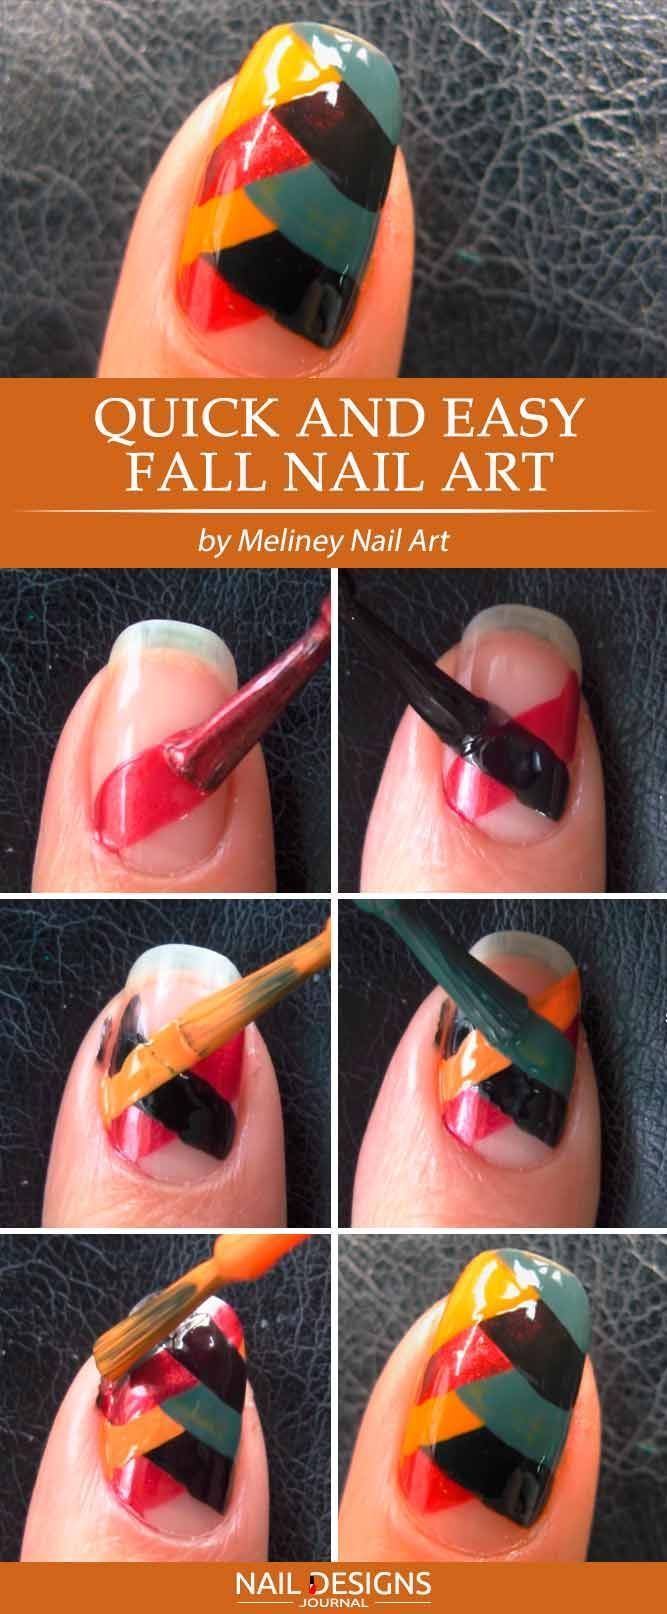 17 Super Easy Nail Designs DIY Tutorials – Nägel lackieren